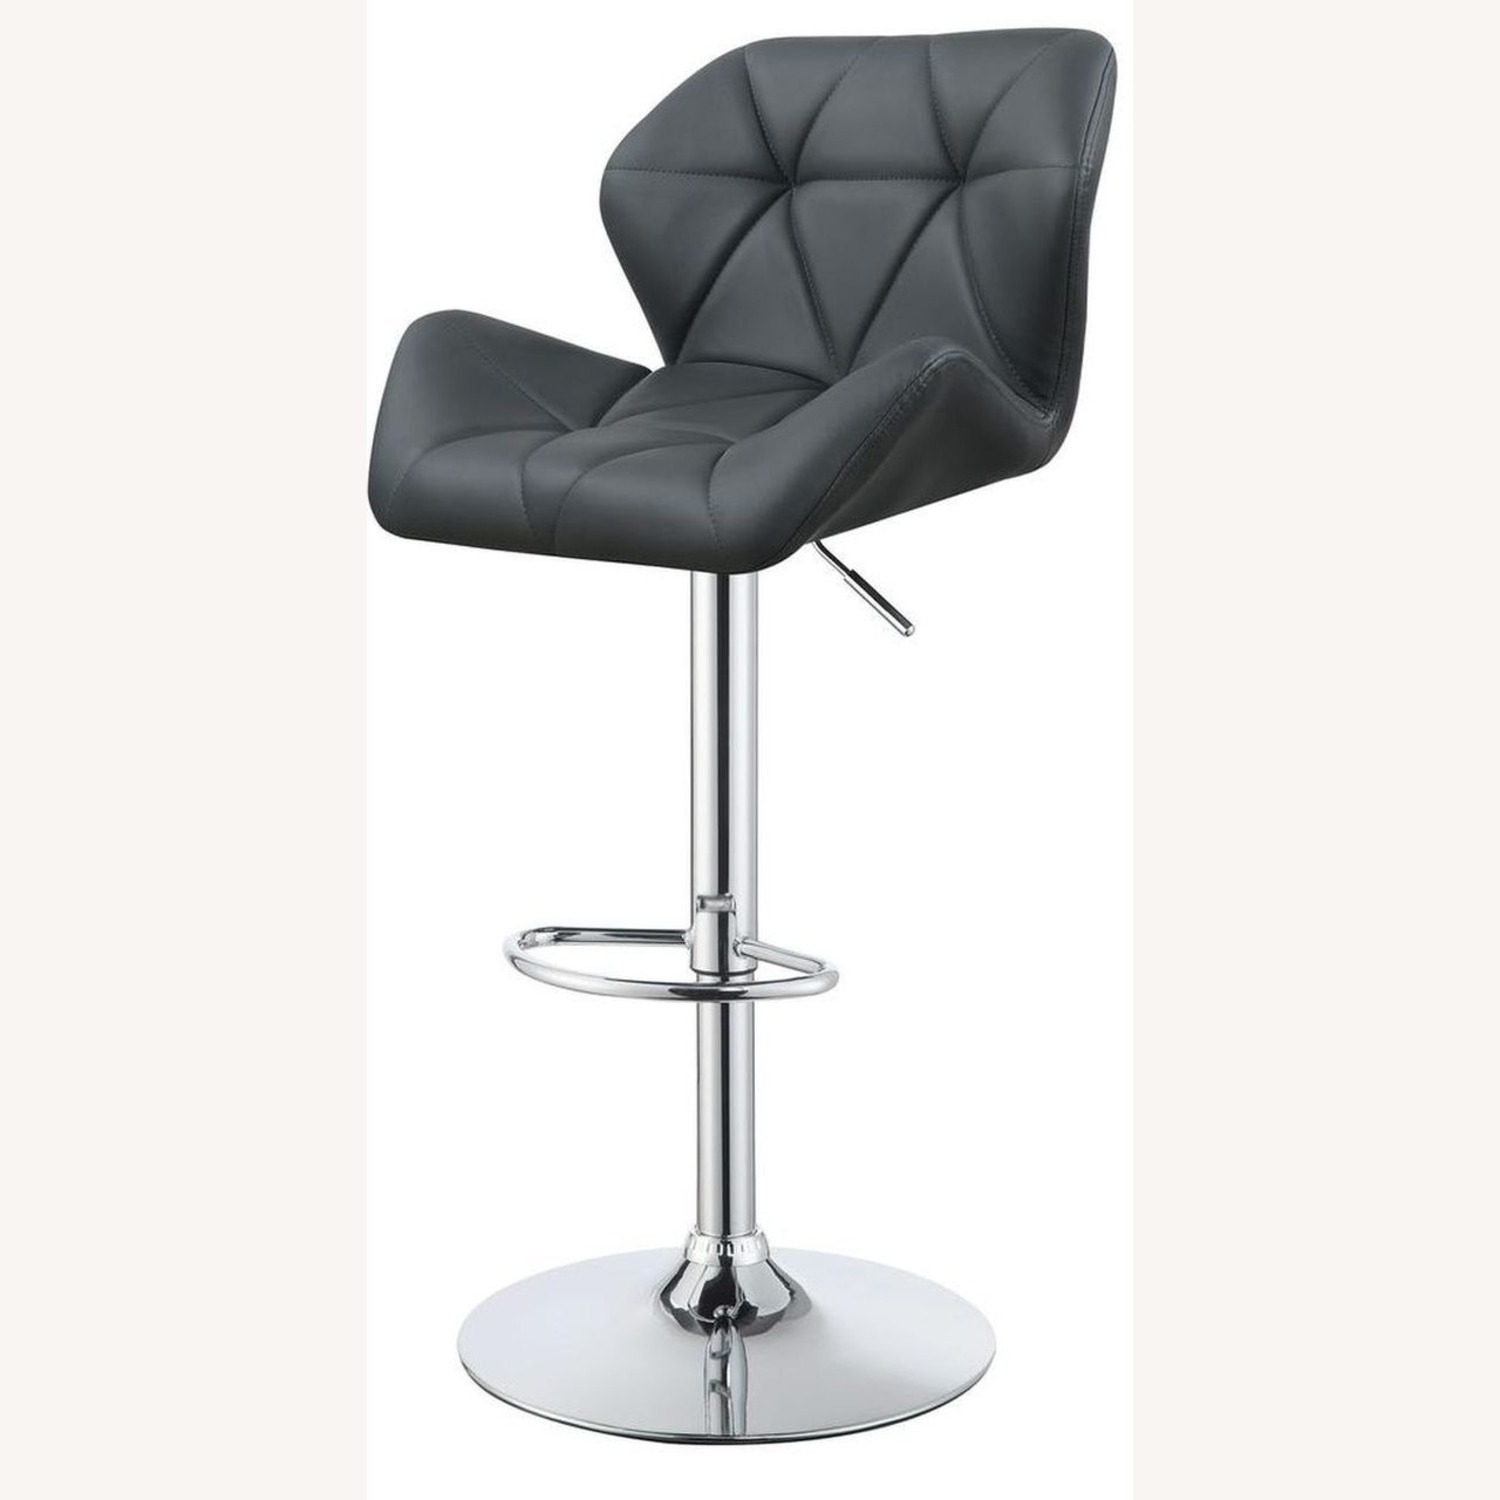 Adjustable In Grey Leather W/ Chrome Base - image-1